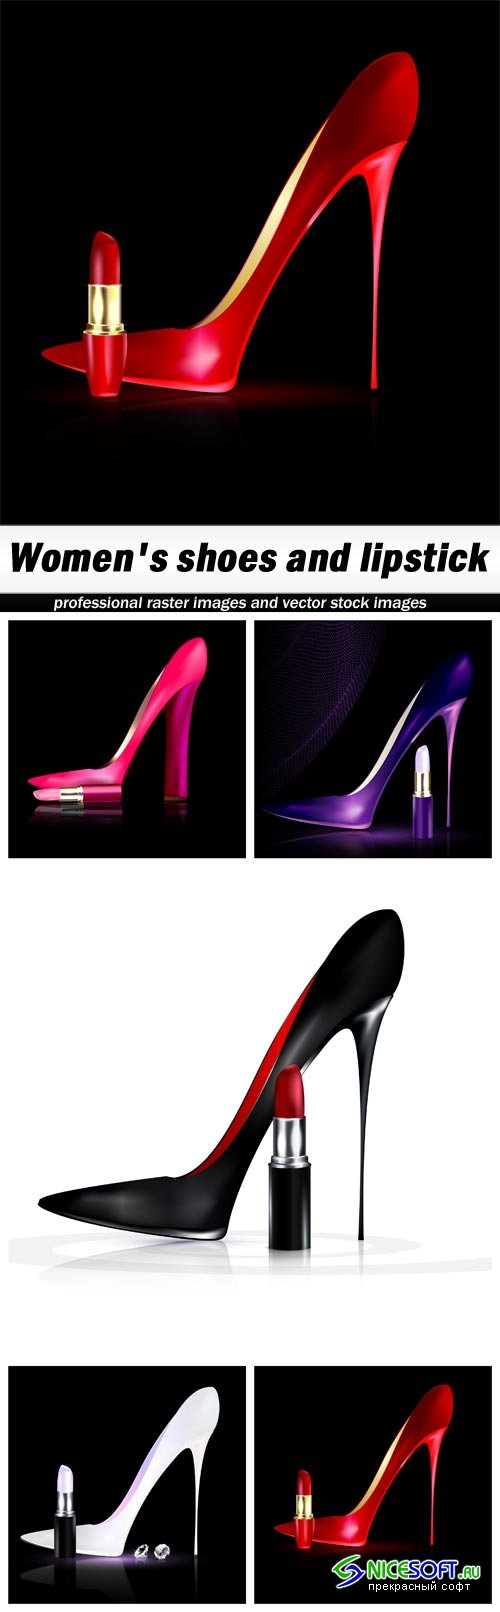 Women's shoes and lipstick - 5 EPS